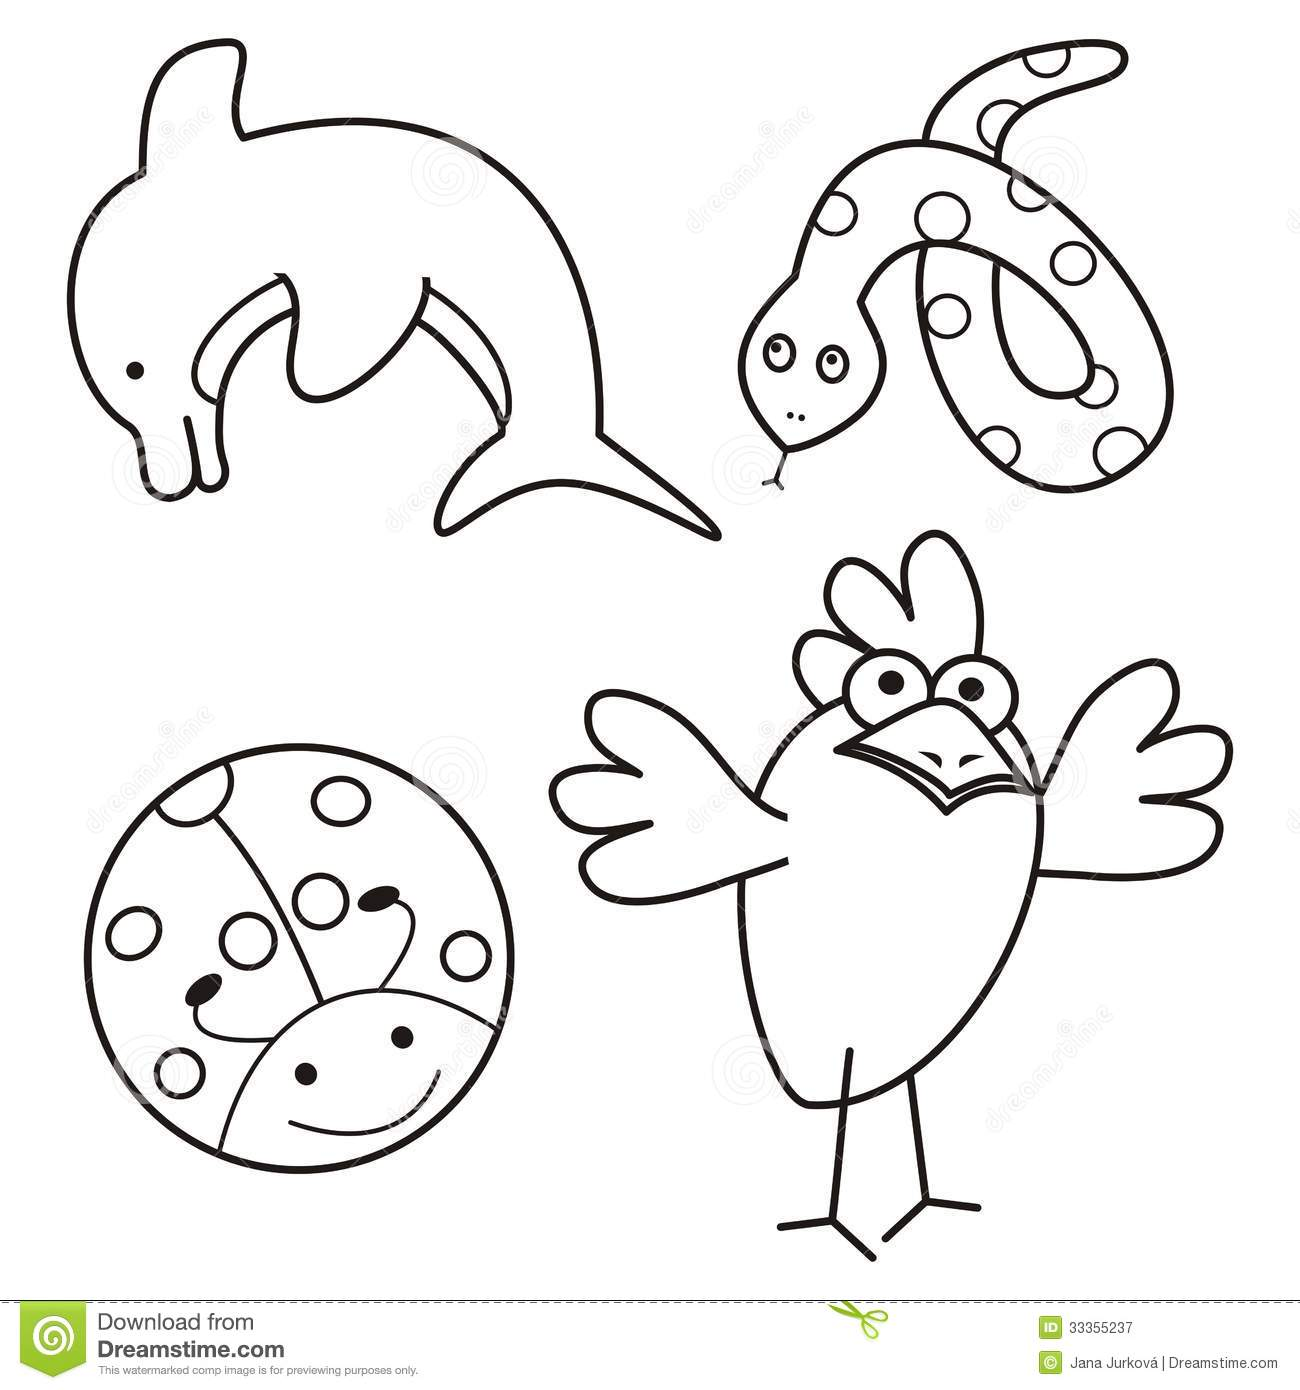 Christmas coloring pages for free spongebob valentineblog net